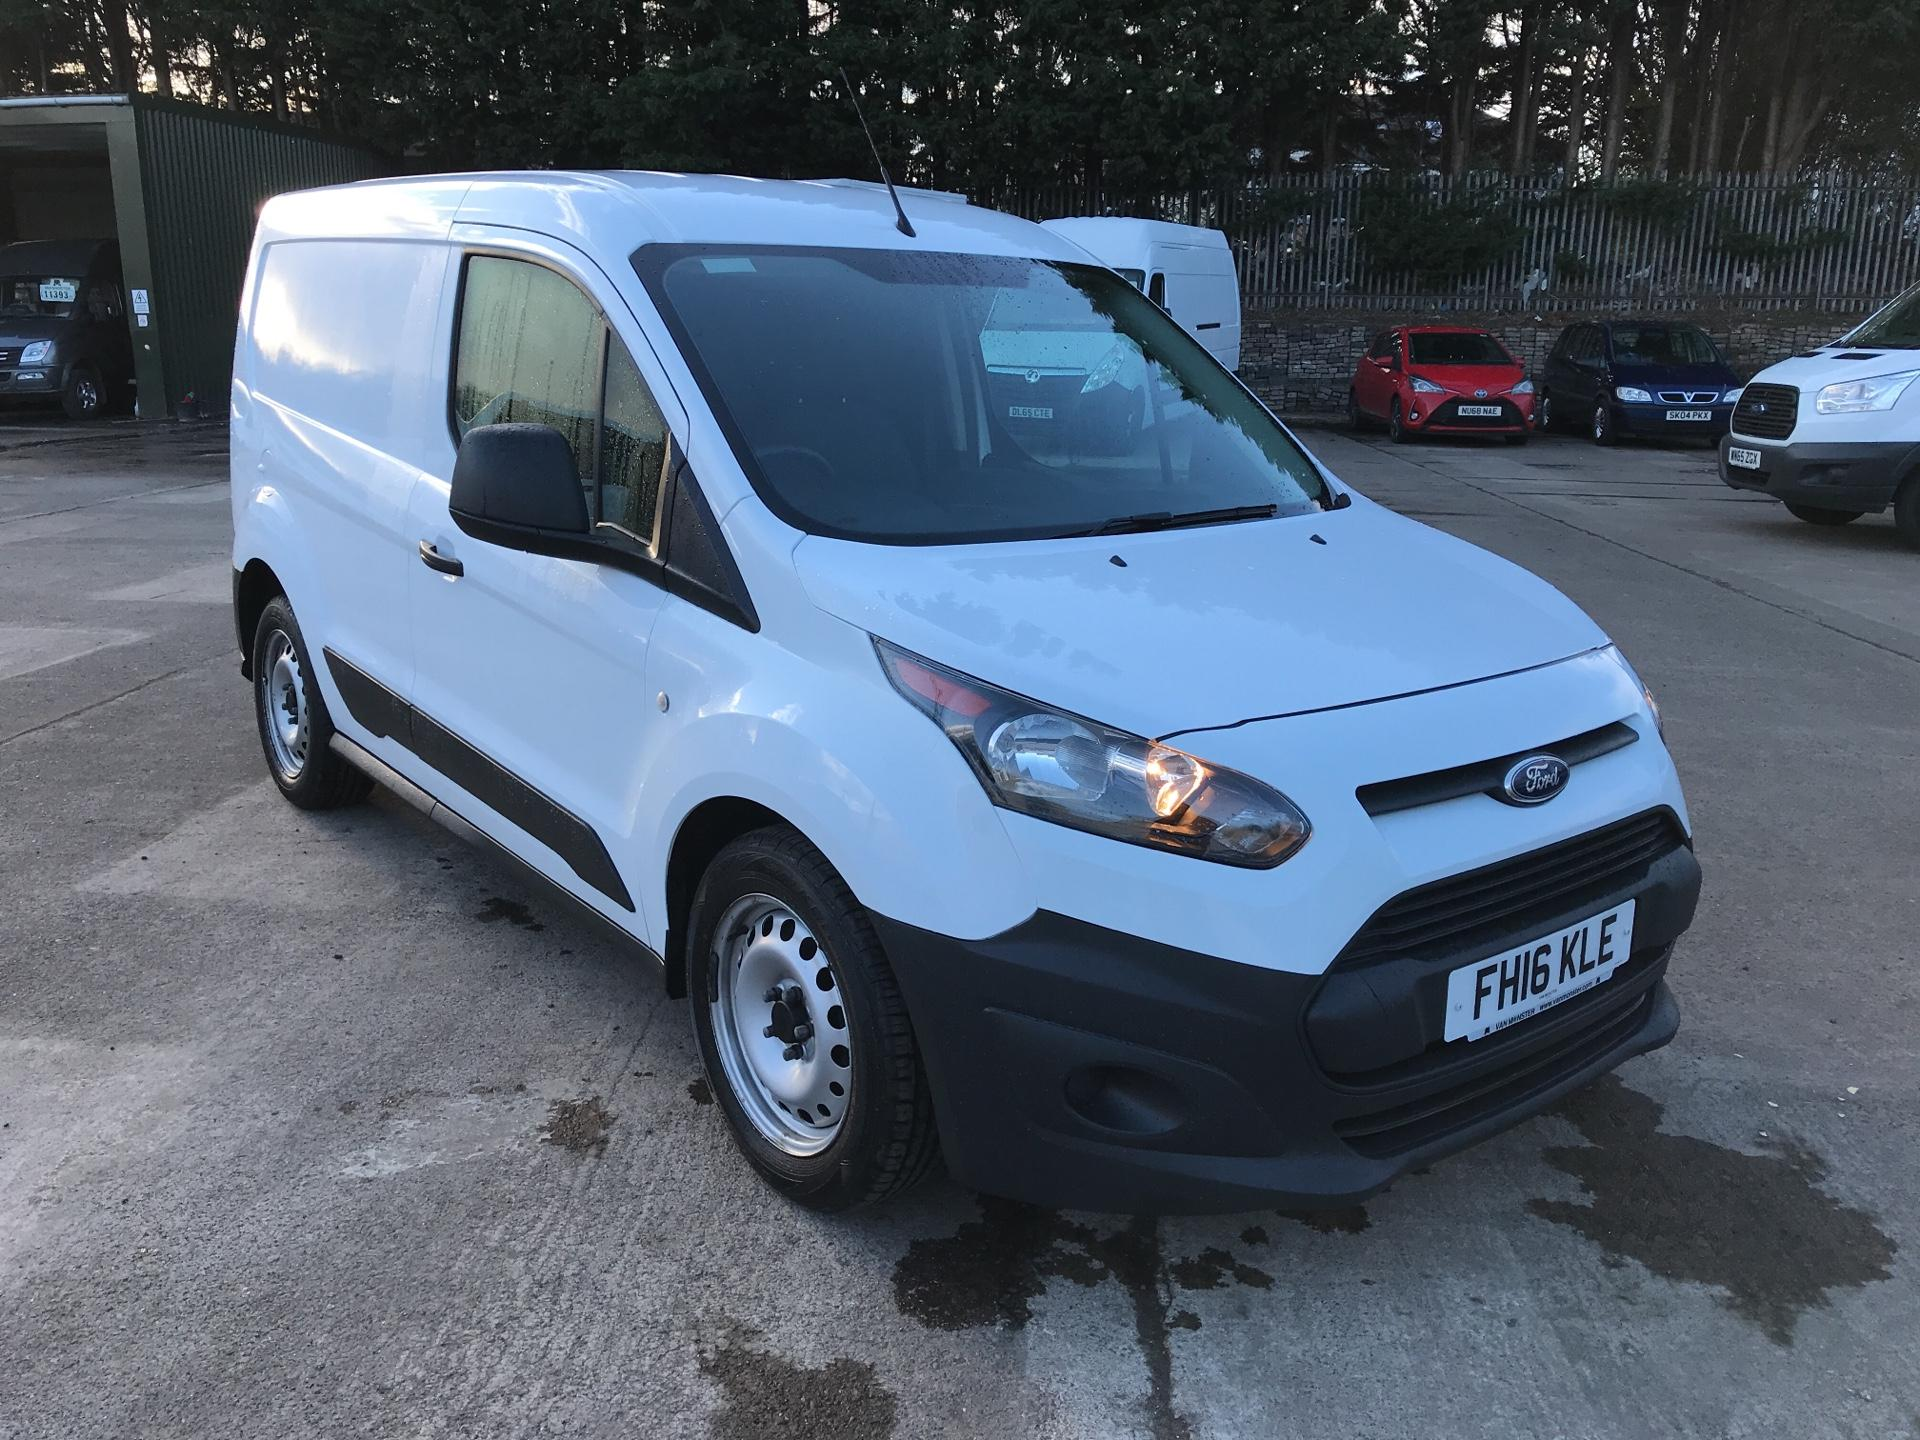 2016 Ford Transit Connect 220 L1 DIESEL 1.5 TDCI 75PS VAN EURO 6 (FH16KLE)